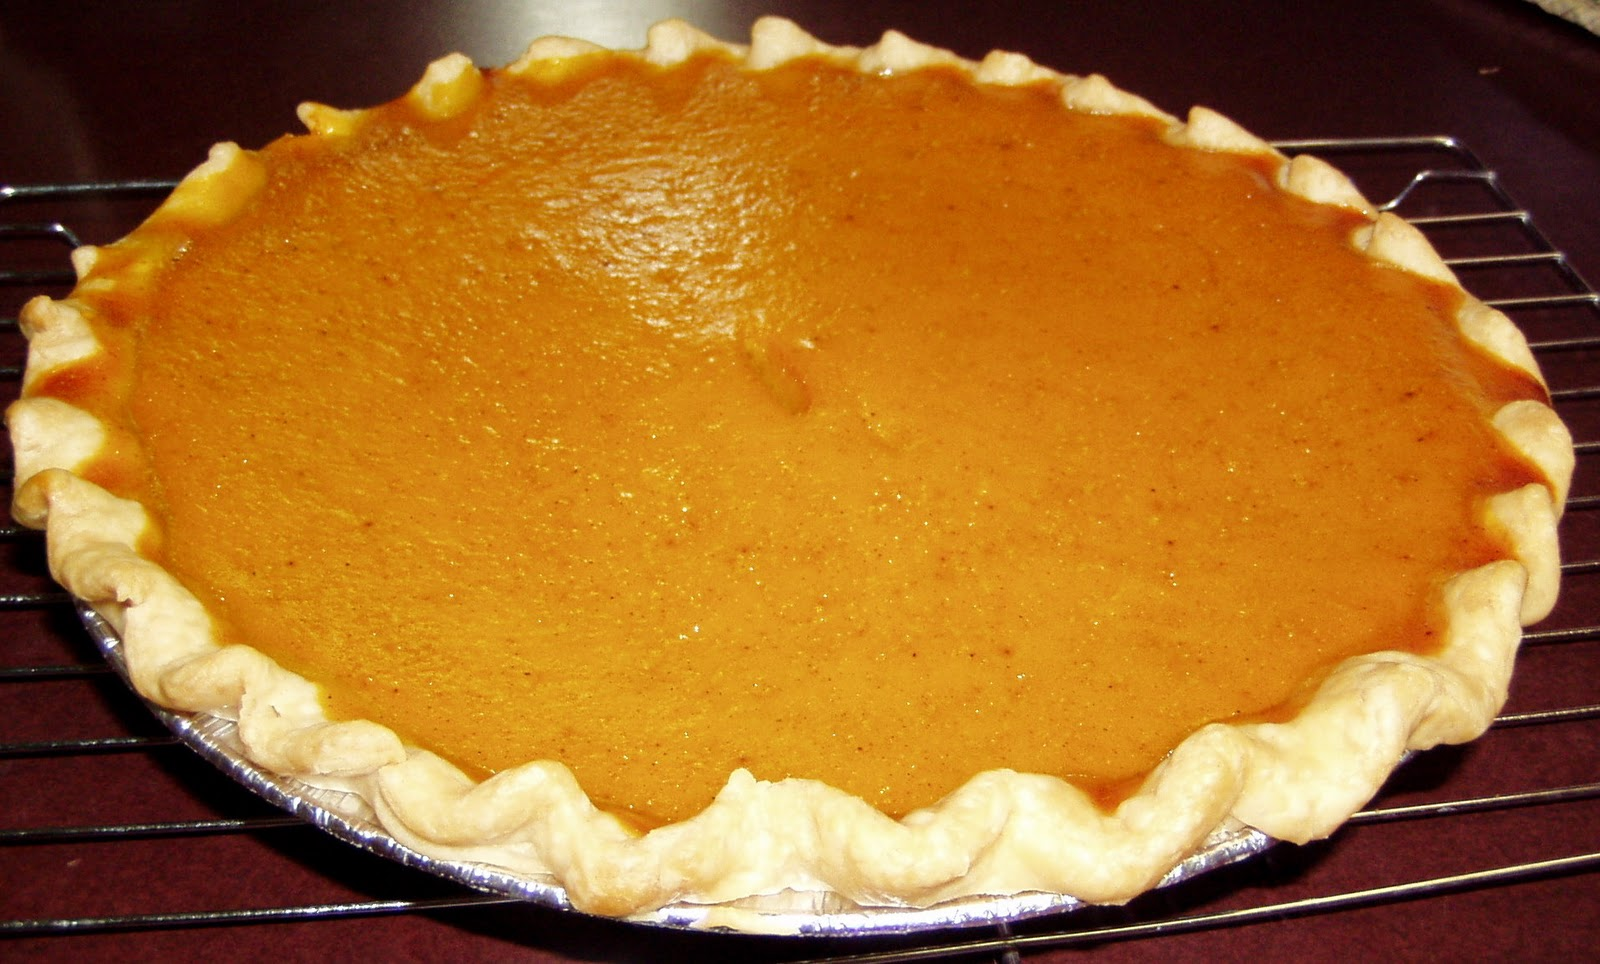 ... Family Homestead: Autumn Pumpkin Pie made with Heirloom Banana Squash